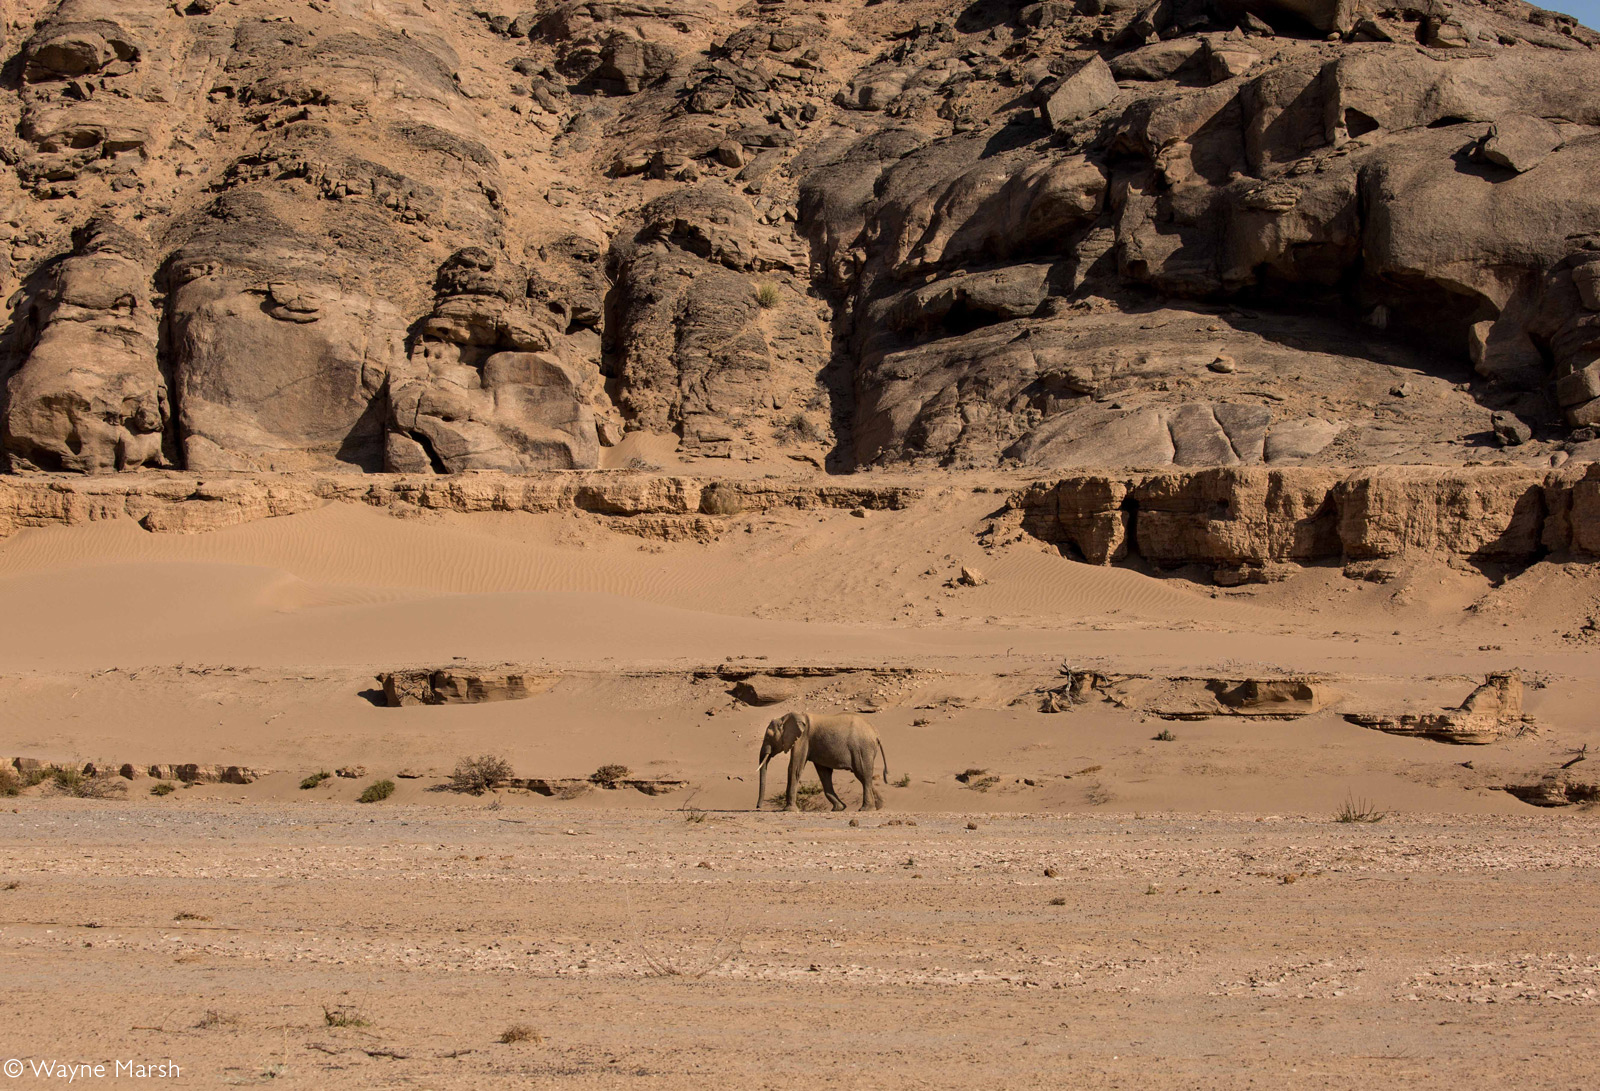 An adult desert-adapted elephant making its way along the Hoanib riverbed. Namibia © Wayne Marsh